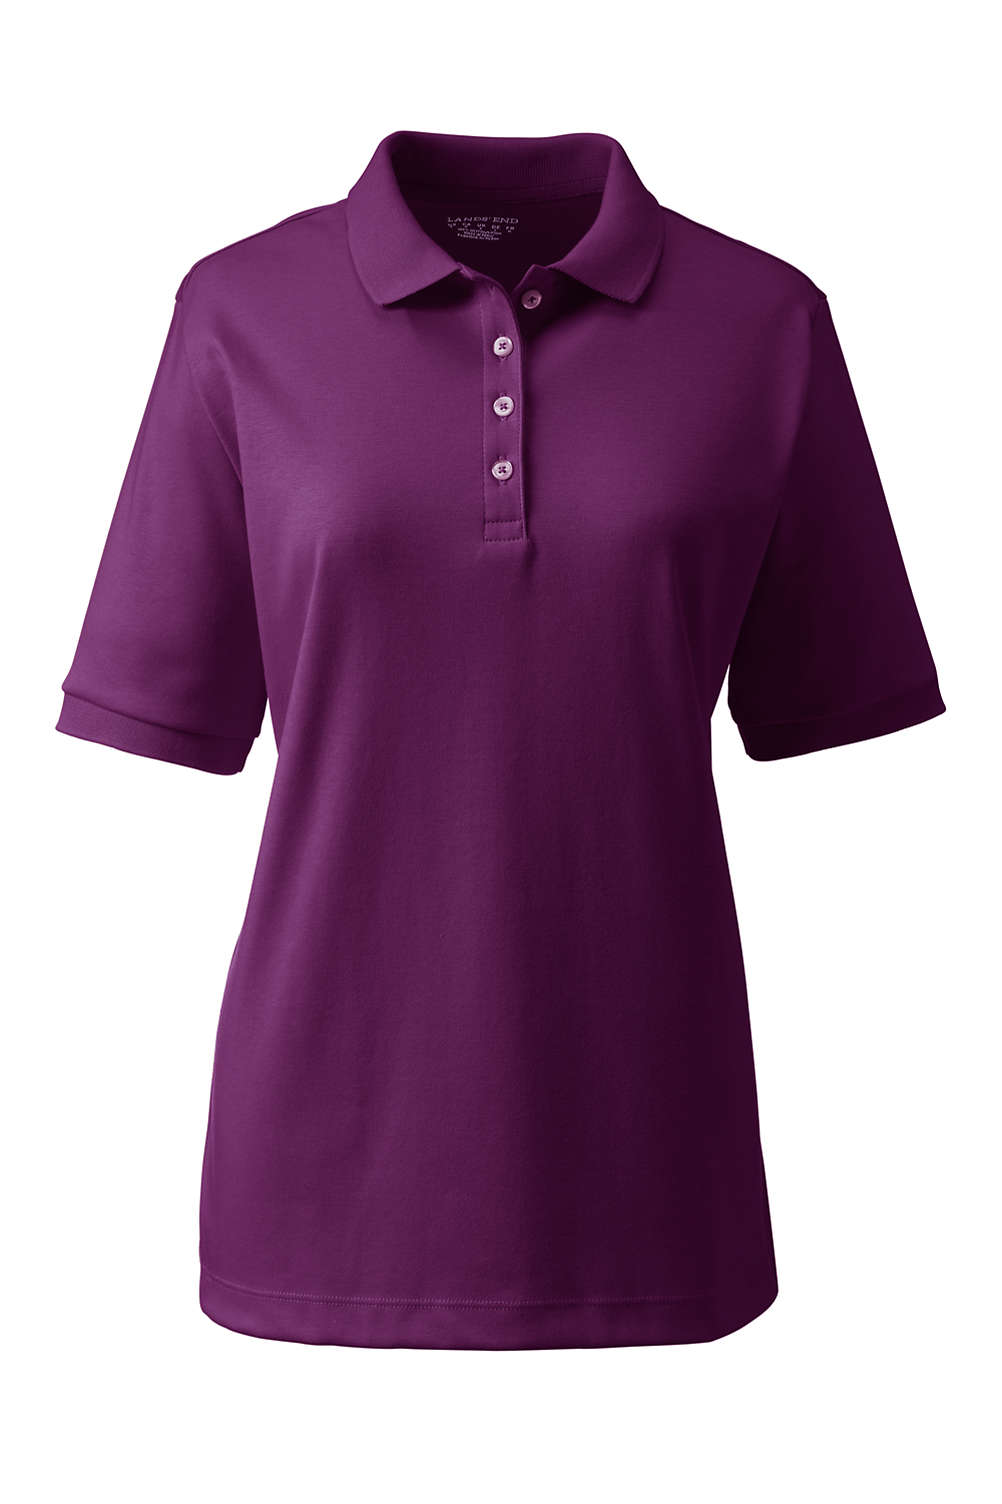 c327a184 Women's Short Sleeve Relaxed Fit Pima Polo. Item #4265997R3. View Fullscreen